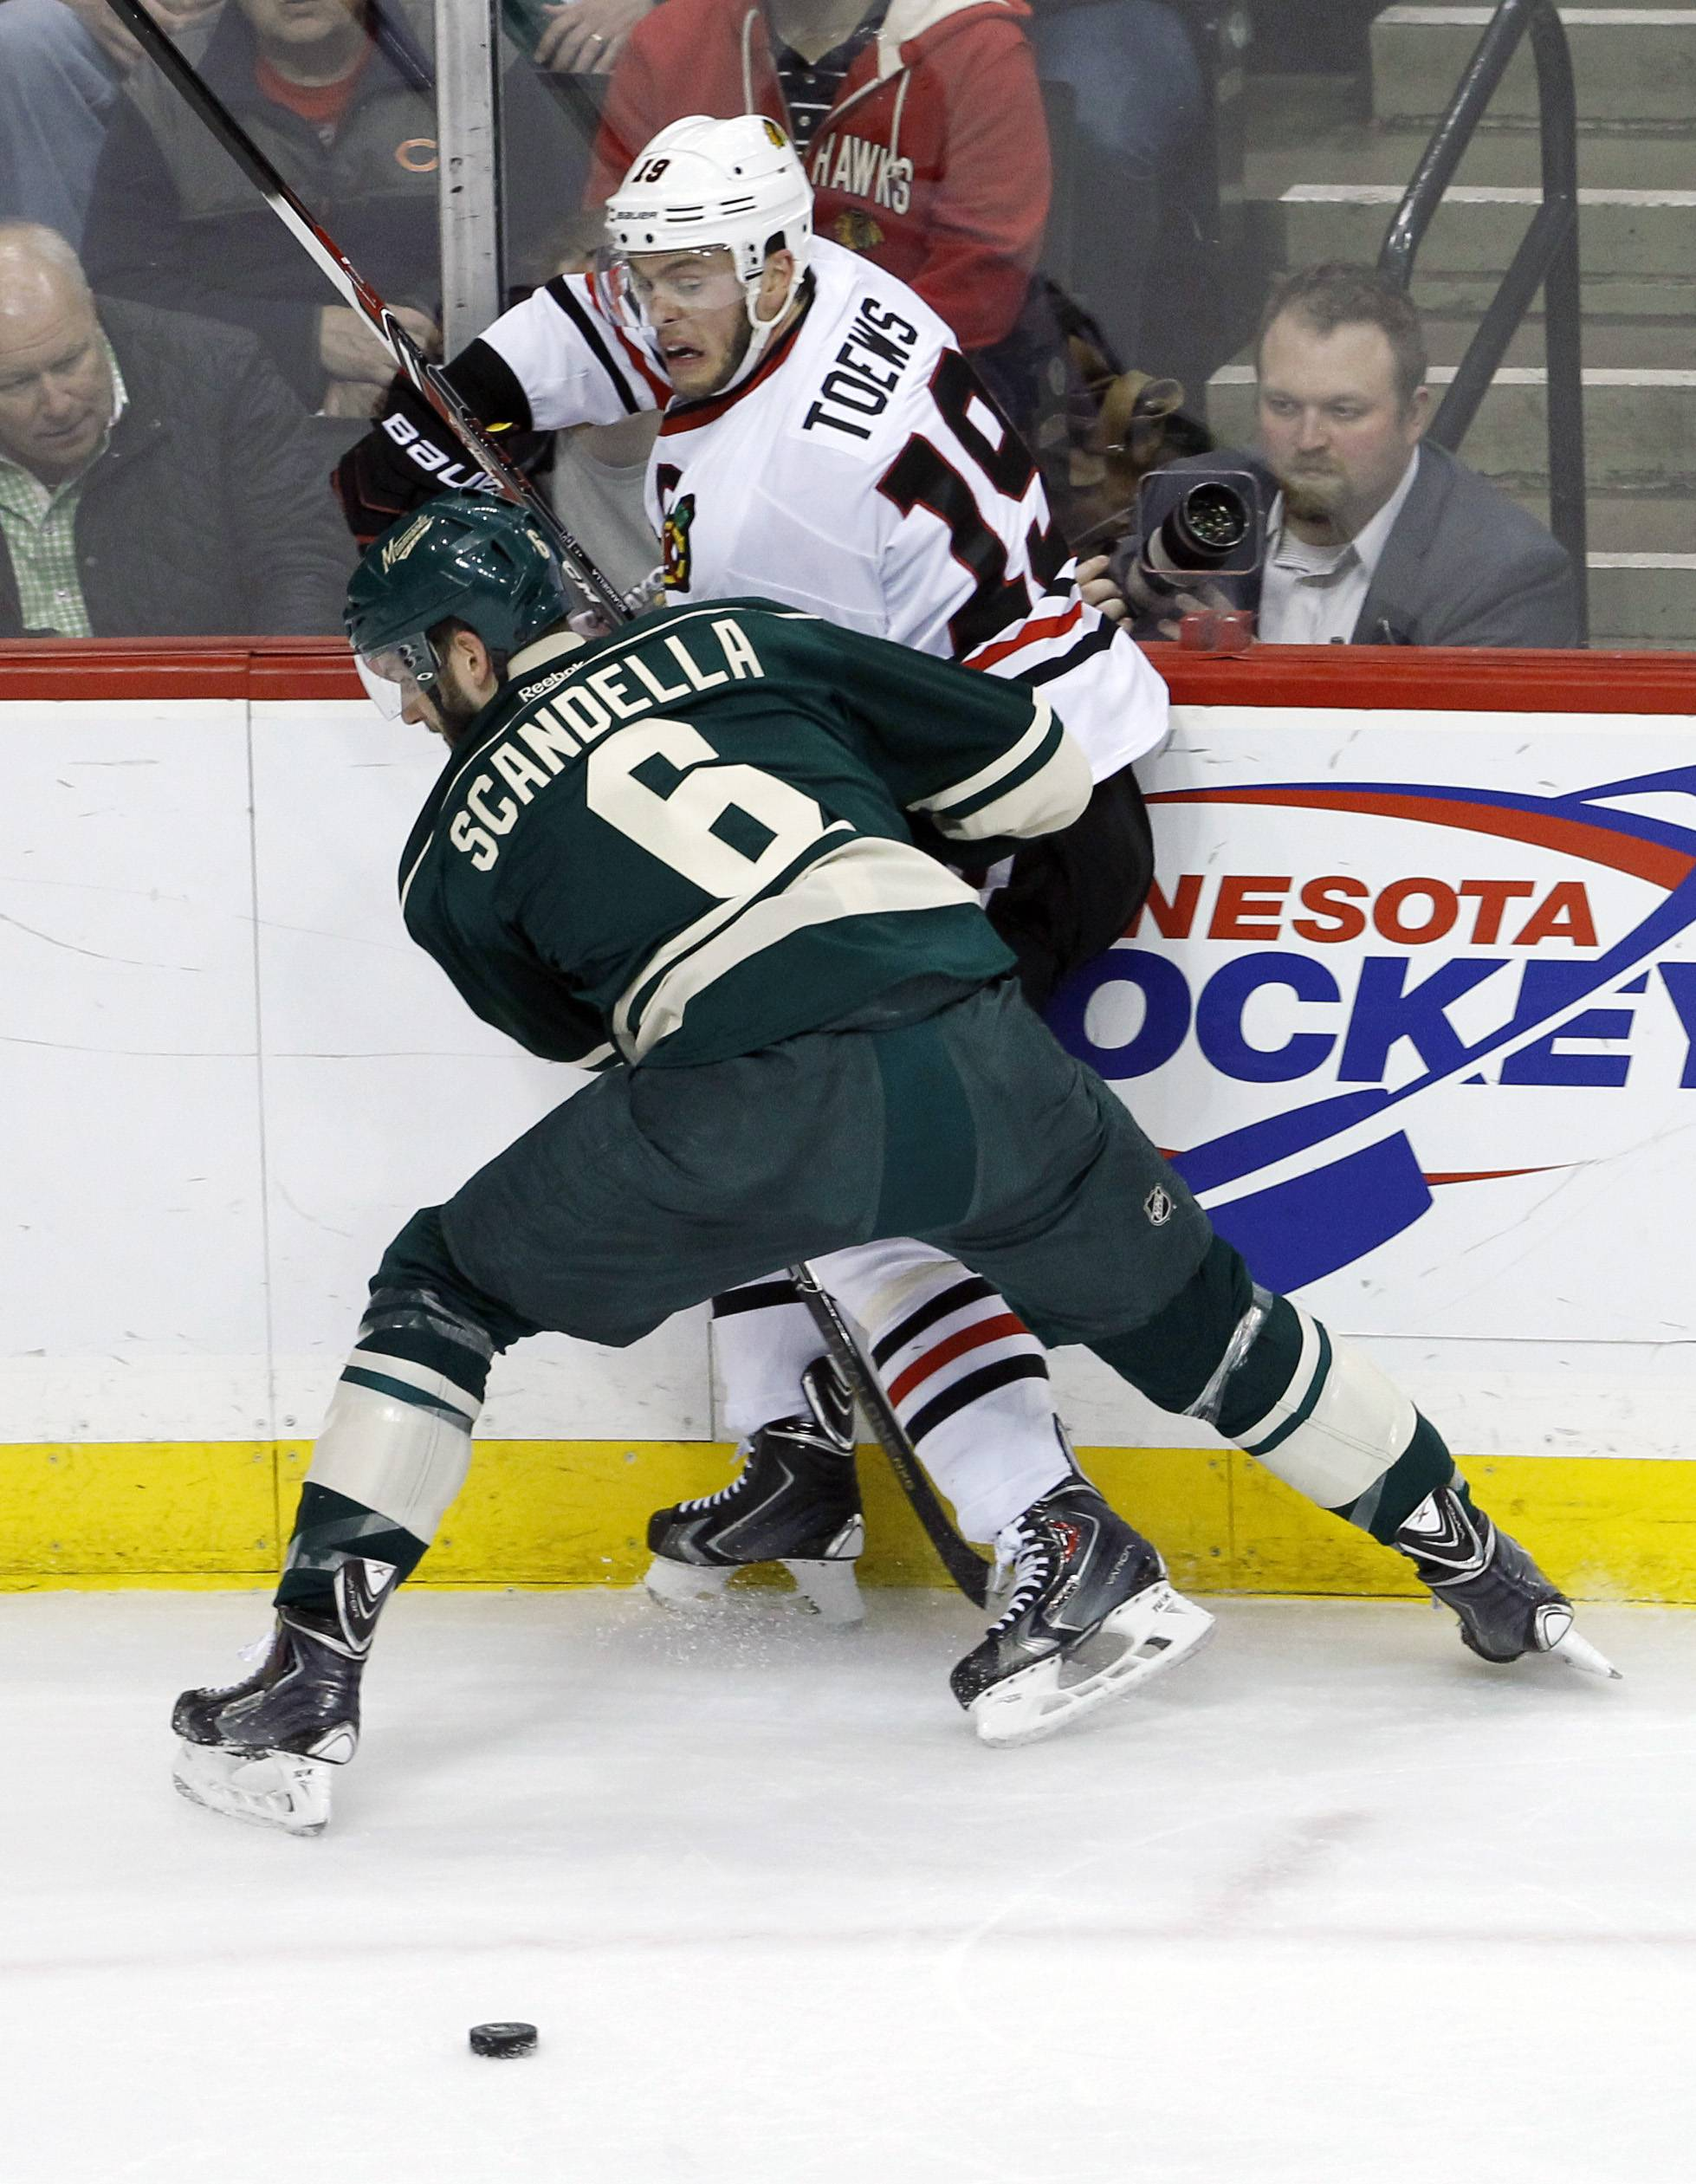 "Minnesota Wild defenseman Marco Scandella (6) pins Chicago Blackhawks center Jonathan Toews (19) against the boards and away from the puck during the first period of Game 3 of an NHL hockey second-round playoff series Tuesday in St. Paul, Minn. Toews said the team just has to put the two-game loss behind them. ""It's playoff hockey — it's not supposed to be easy,"" Toews said."